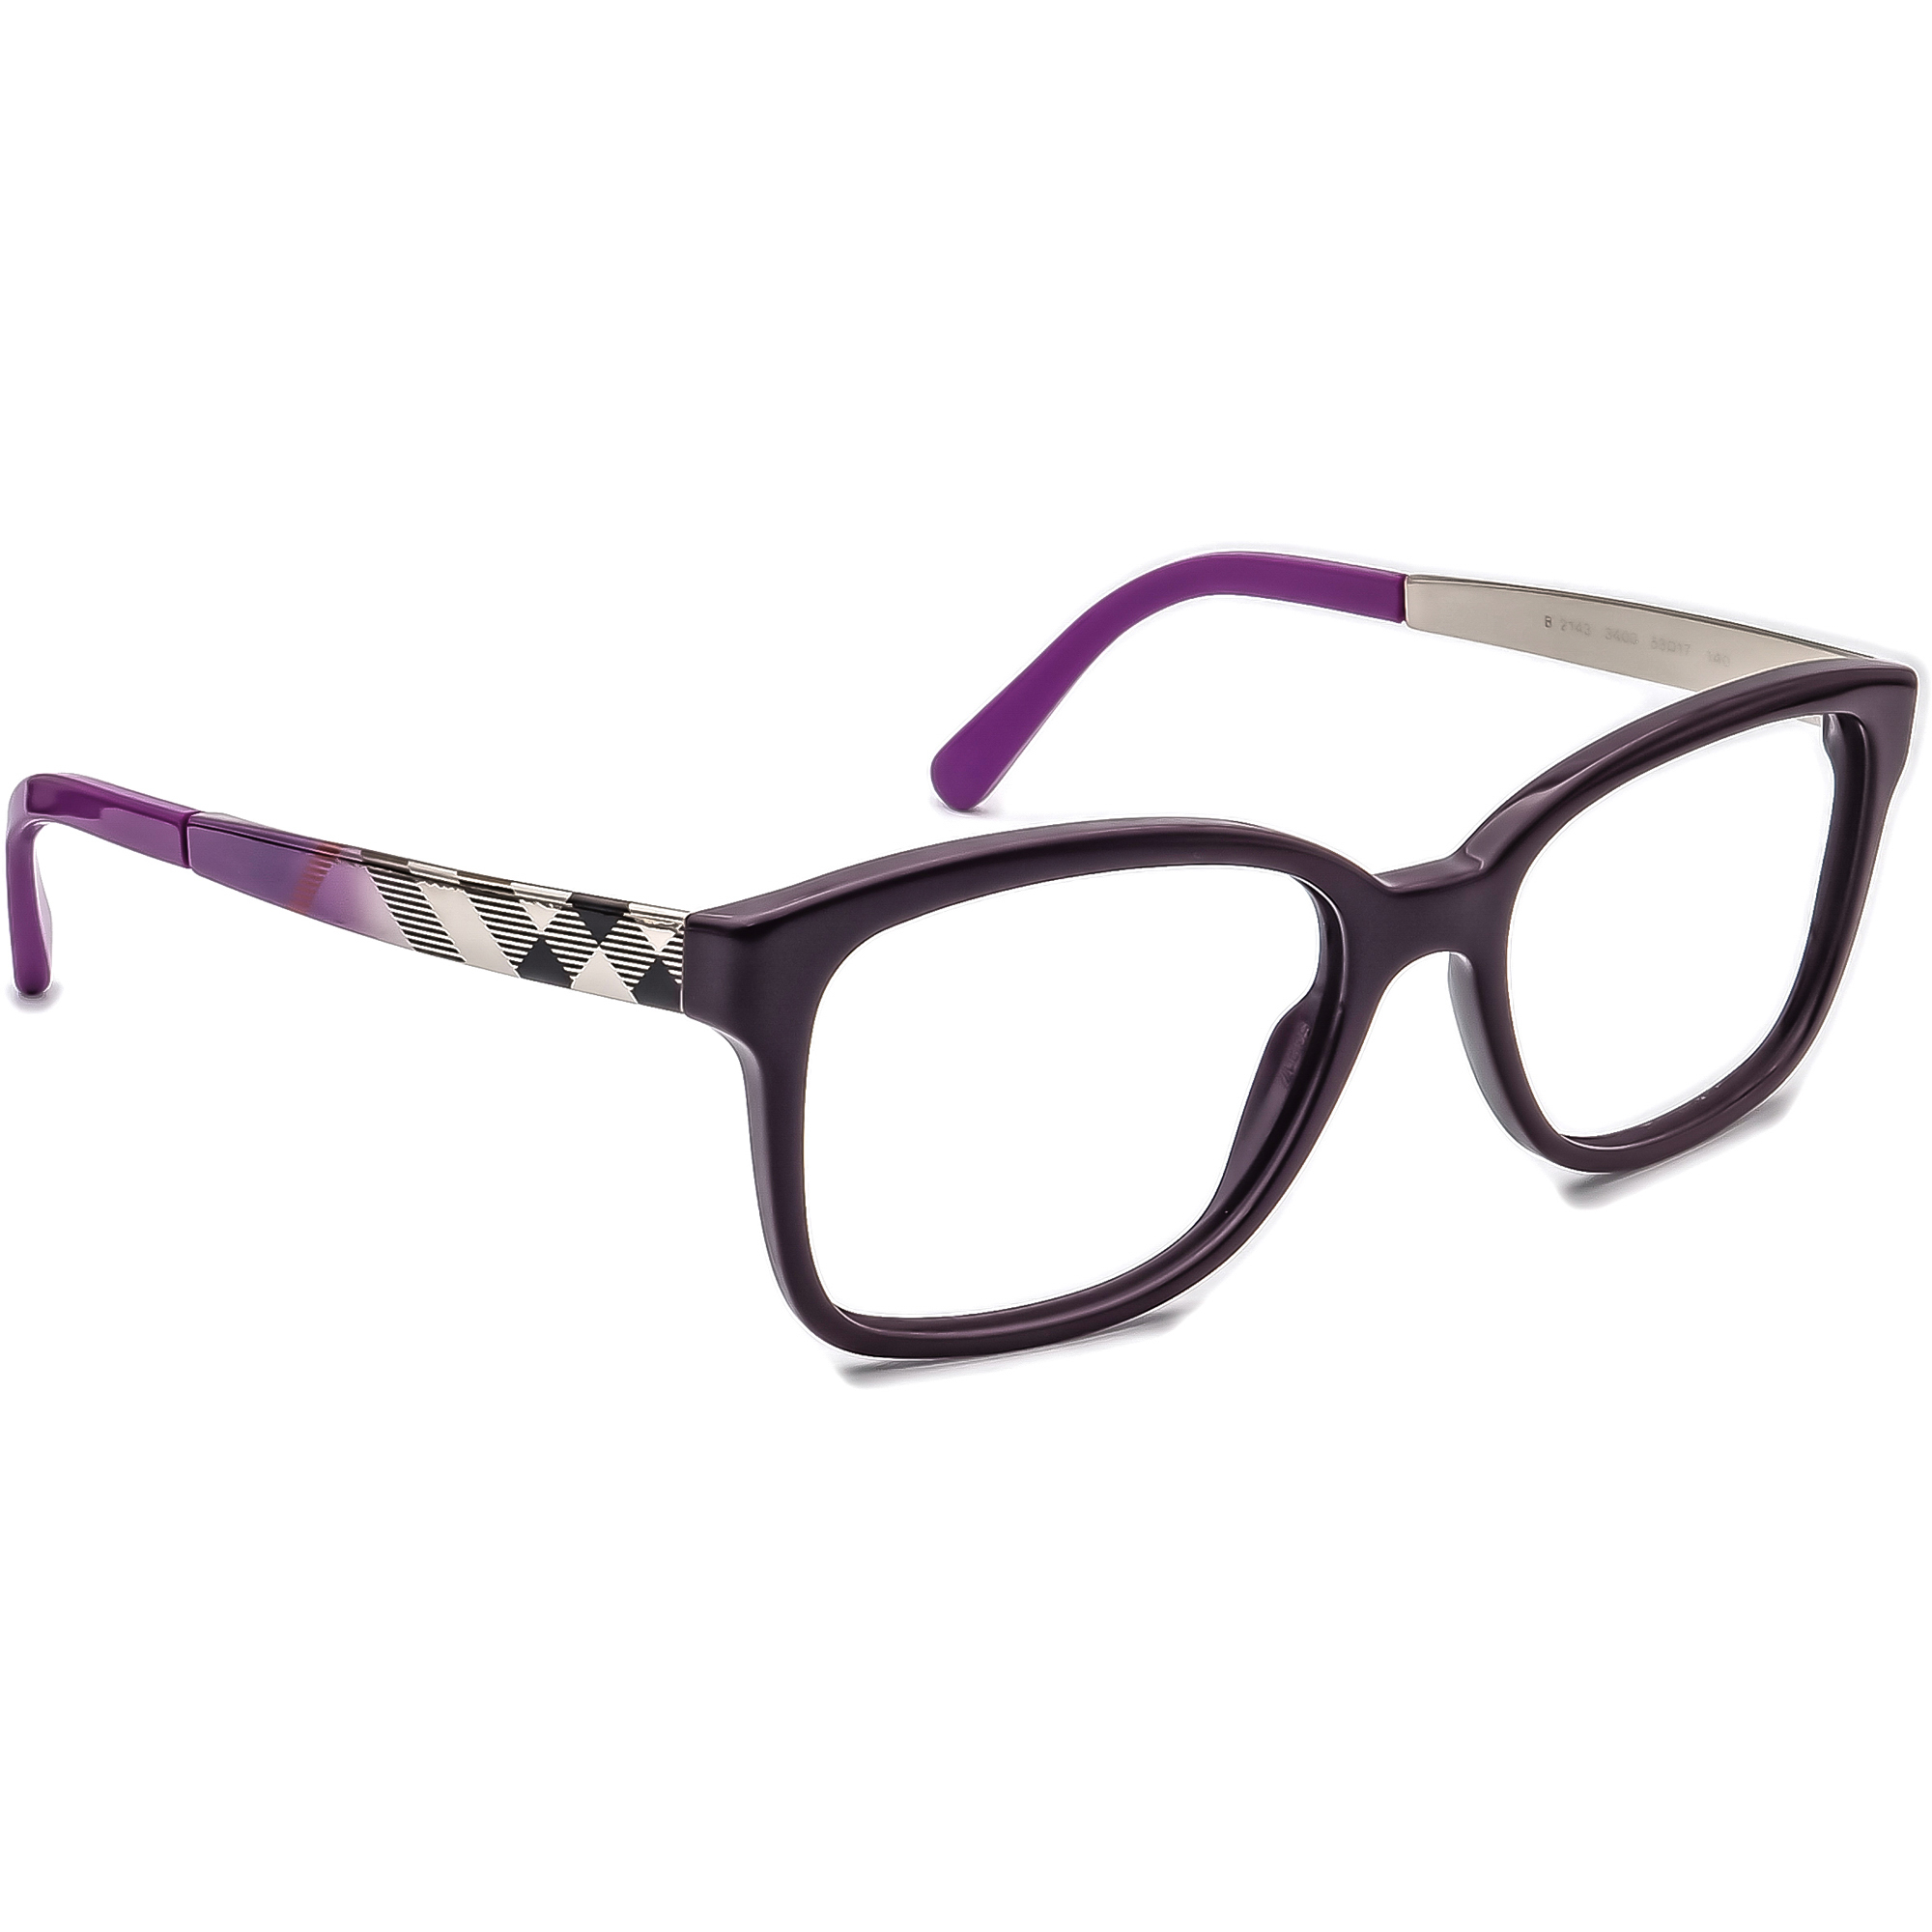 Burberry B 2143 3400 Plaid Eyeglasses